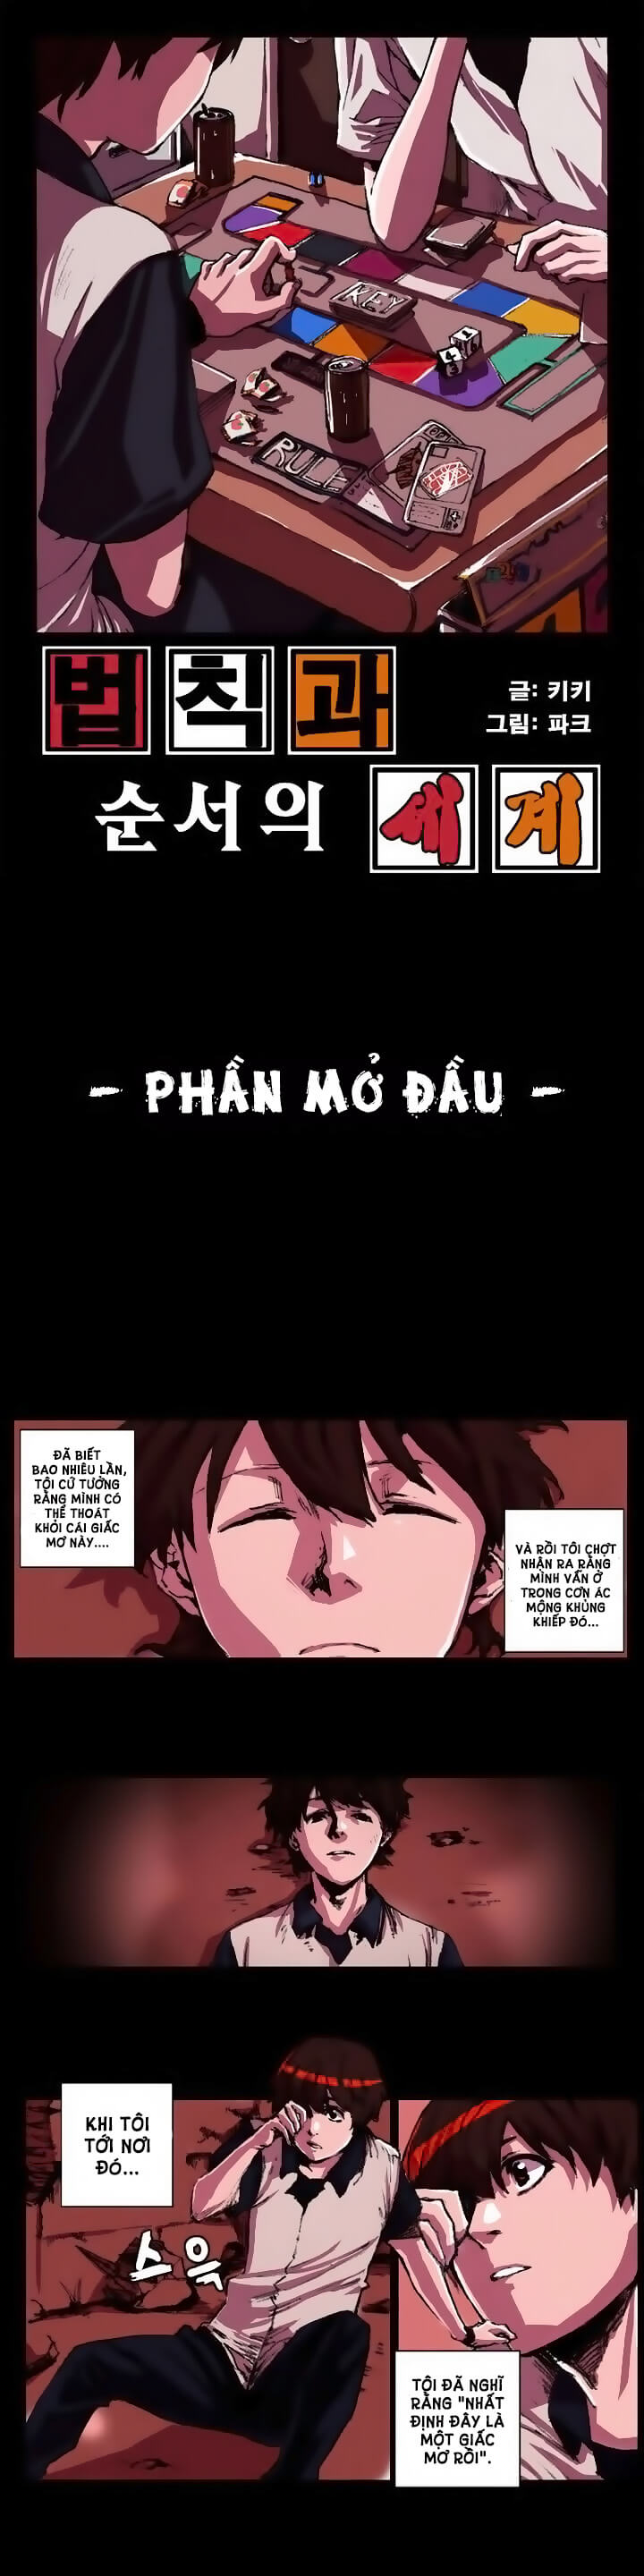 World of Law and Order Chap 0 - Next Chap 1